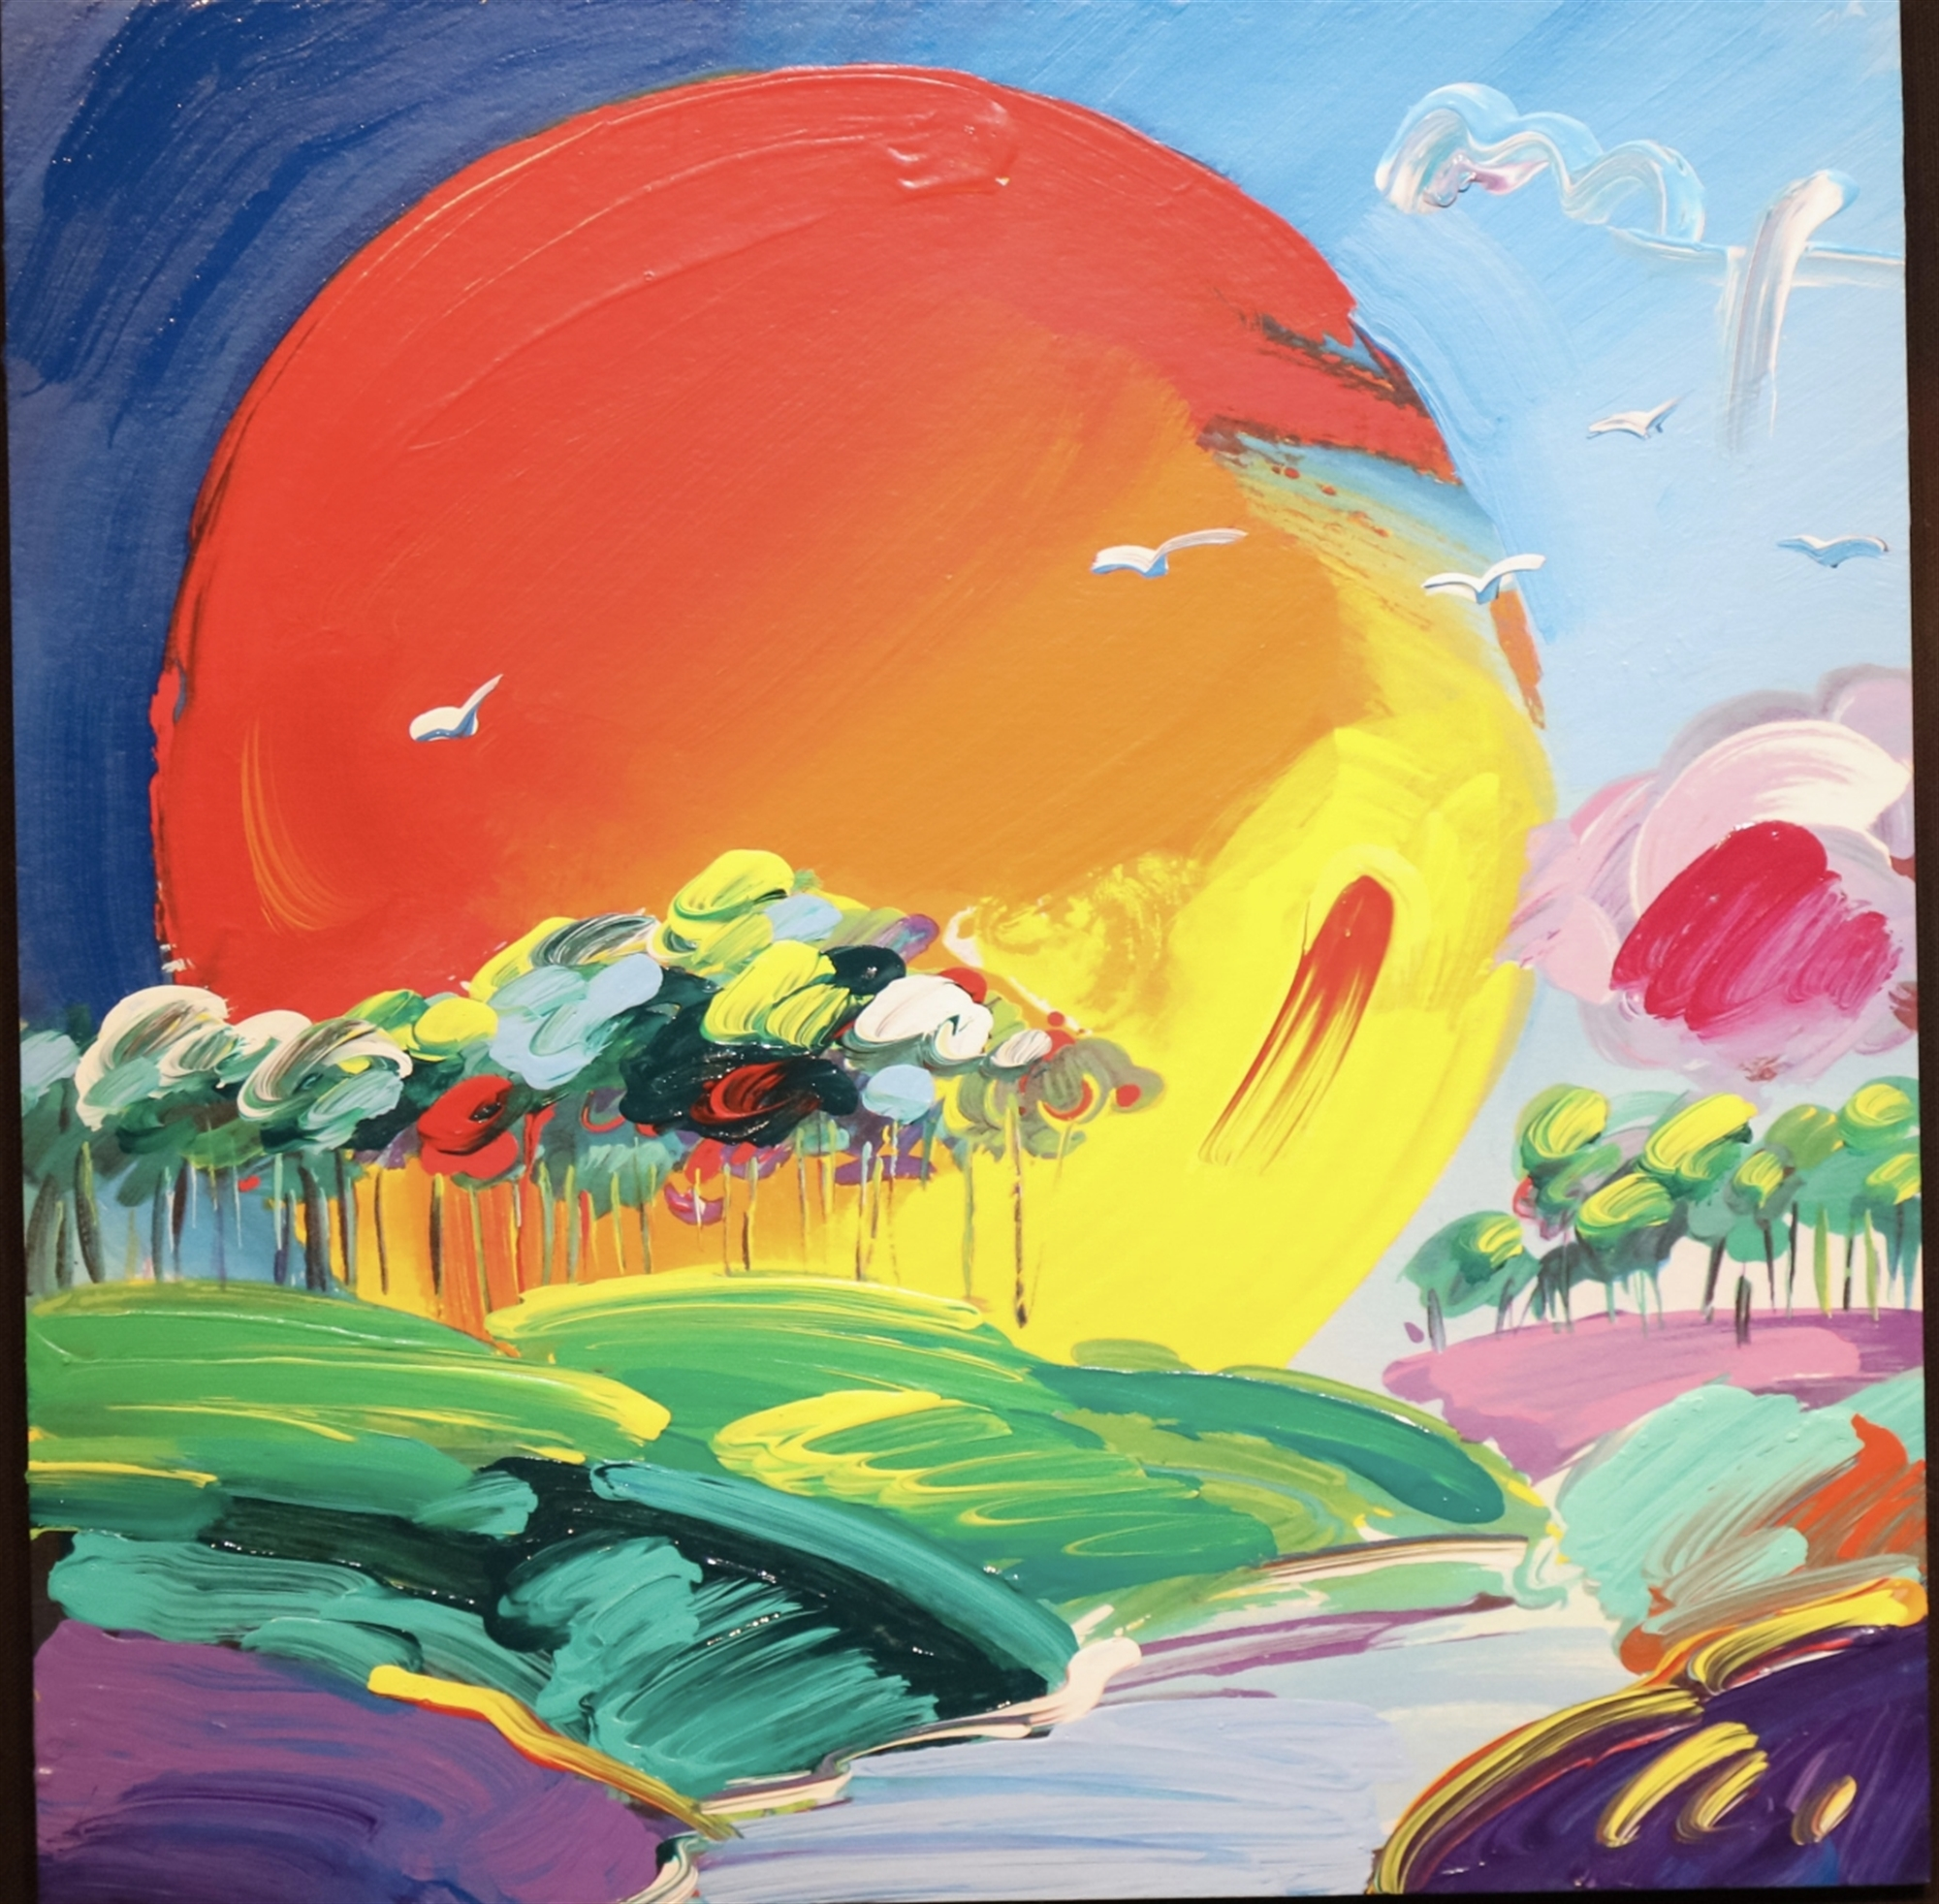 RETRO SUITE: WITHOUT BORDERS by Peter Max